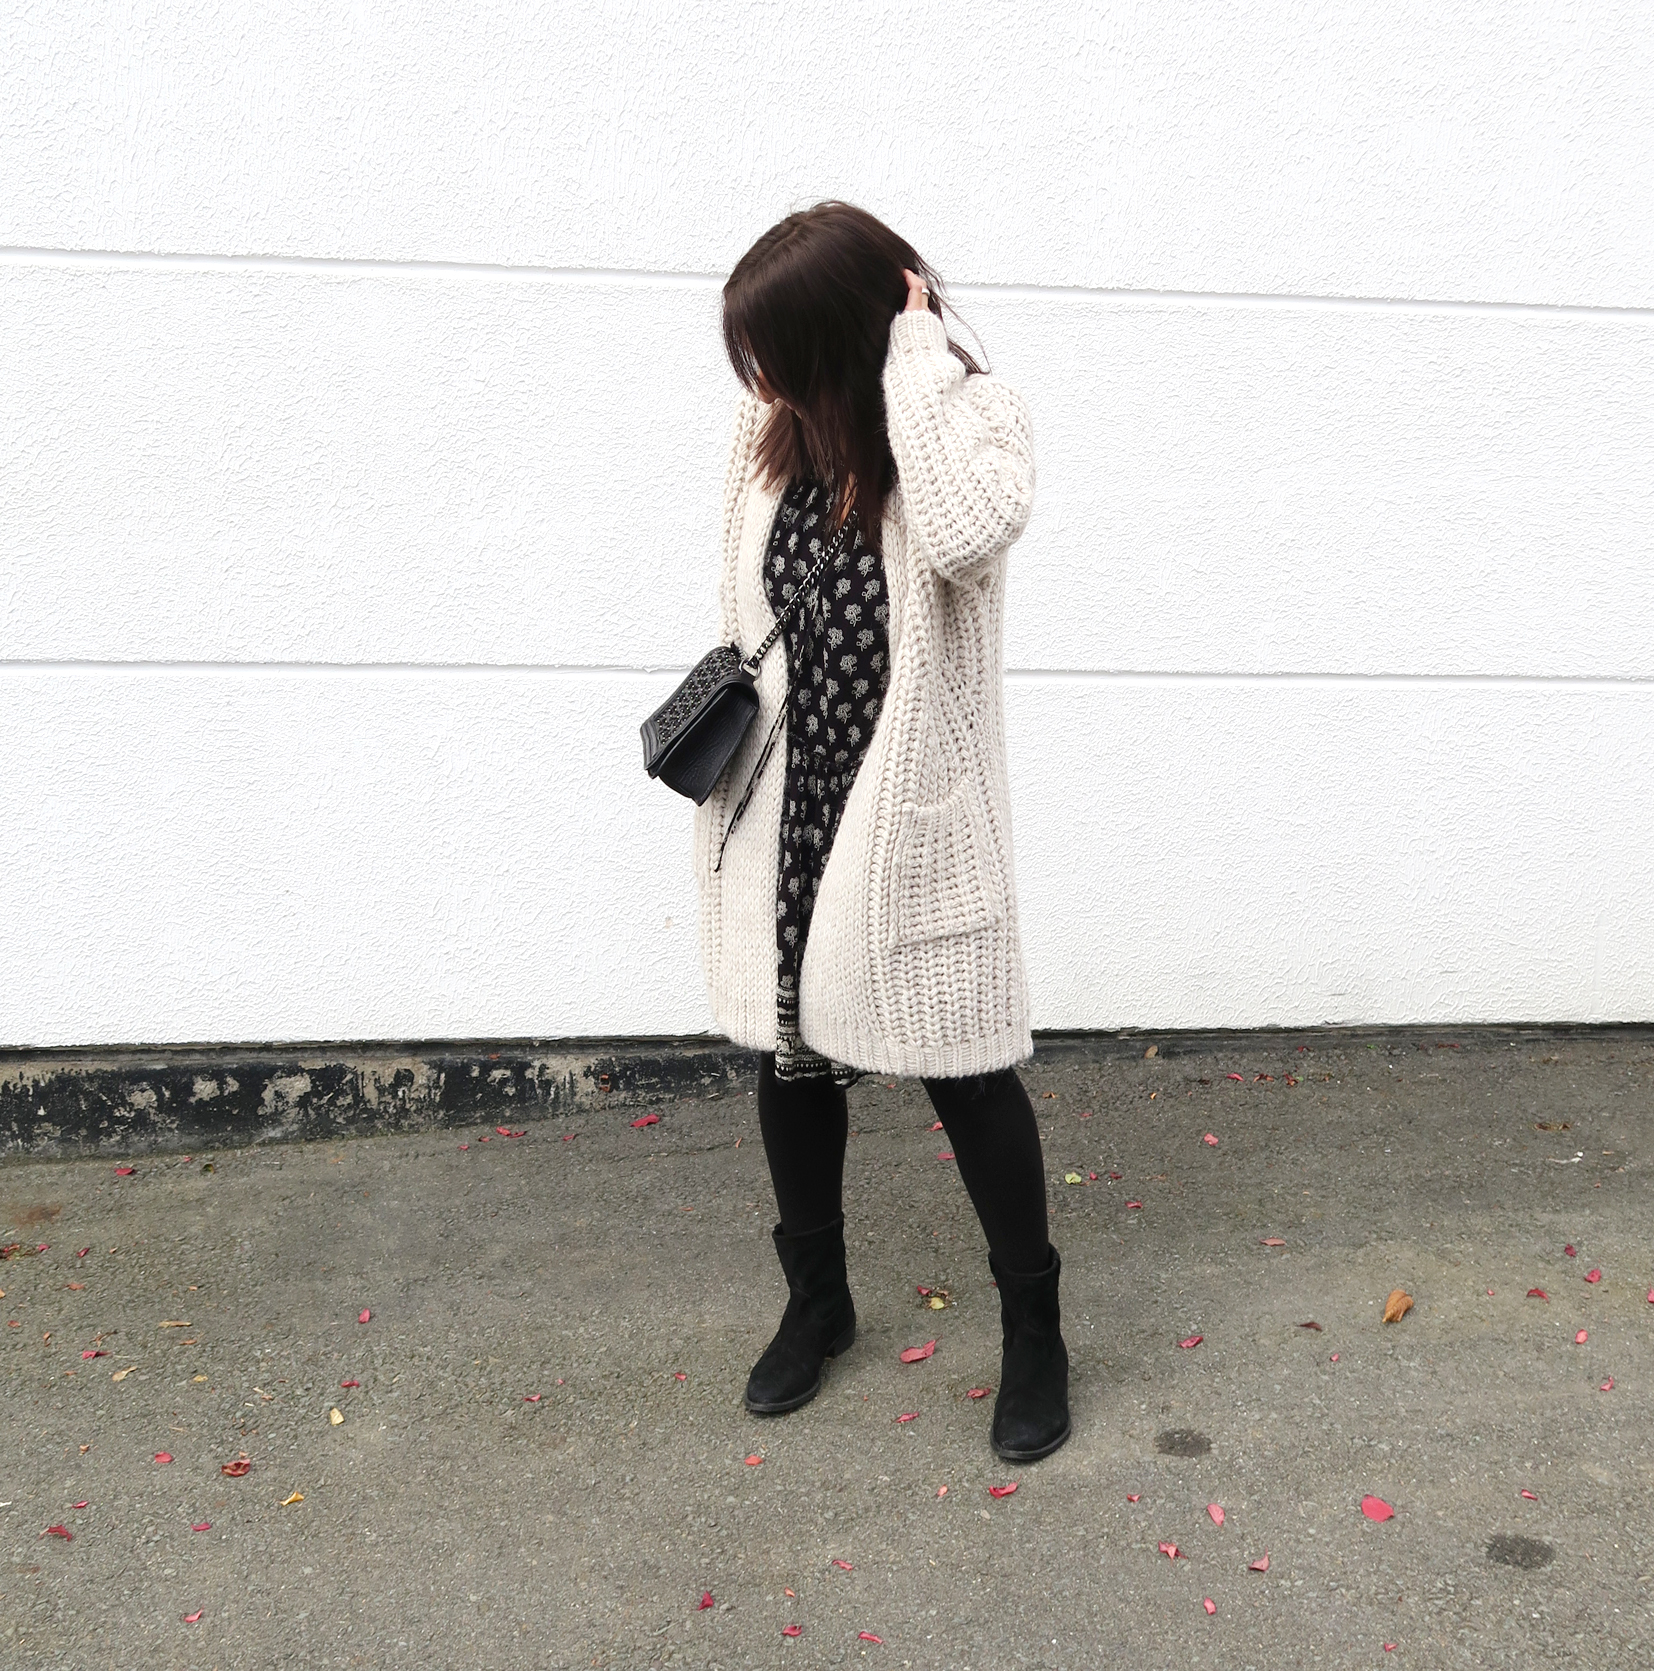 blogger-style-winter-dress-knit-fashionblogger-streetstyle-boots-6